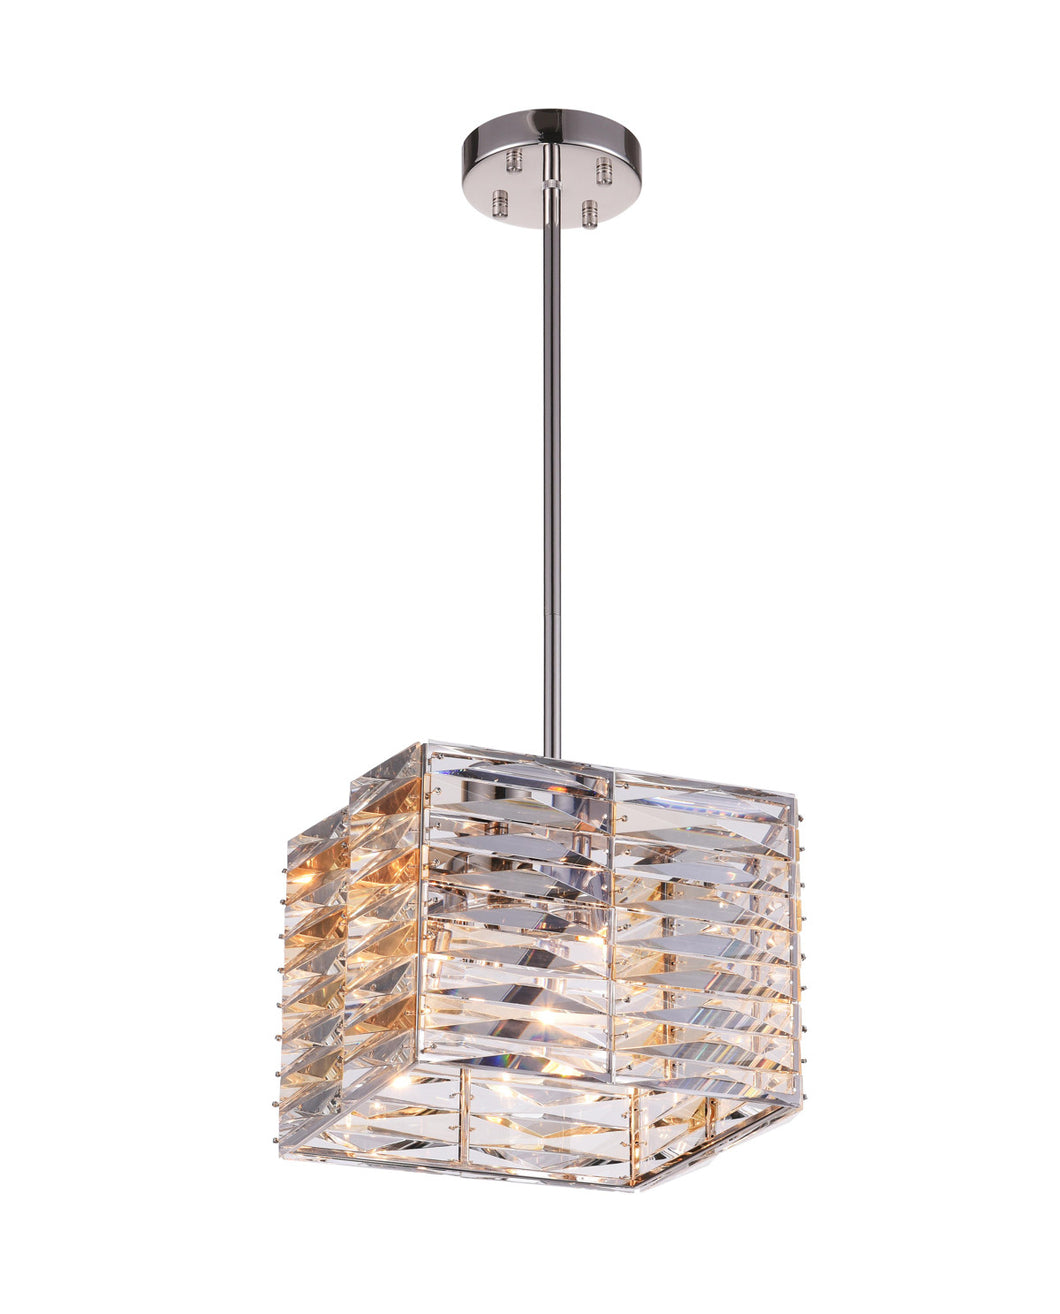 4 Light Down Mini Chandelier with Bright Nickel finish